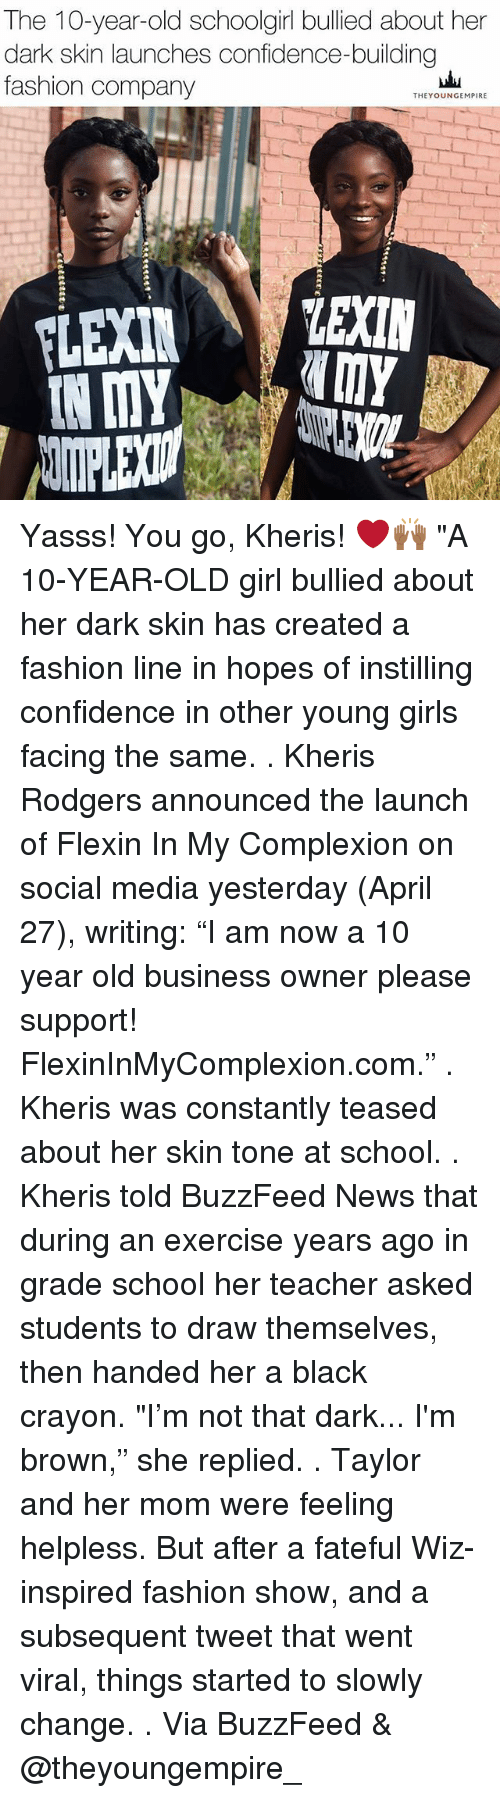 "Helplessness: The 10-year-old schoolgirl bullied about her  dark skin launches confidence-building  fashion company  THEYOUNGEMPIRE  LEXIN  IN MY Yasss! You go, Kheris! ❤️🙌🏾 ""A 10-YEAR-OLD girl bullied about her dark skin has created a fashion line in hopes of instilling confidence in other young girls facing the same. . Kheris Rodgers announced the launch of Flexin In My Complexion on social media yesterday (April 27), writing: ""I am now a 10 year old business owner please support! FlexinInMyComplexion.com."" . Kheris was constantly teased about her skin tone at school. . Kheris told BuzzFeed News that during an exercise years ago in grade school her teacher asked students to draw themselves, then handed her a black crayon. ""I'm not that dark... I'm brown,"" she replied. . Taylor and her mom were feeling helpless. But after a fateful Wiz-inspired fashion show, and a subsequent tweet that went viral, things started to slowly change. . Via BuzzFeed & @theyoungempire_"